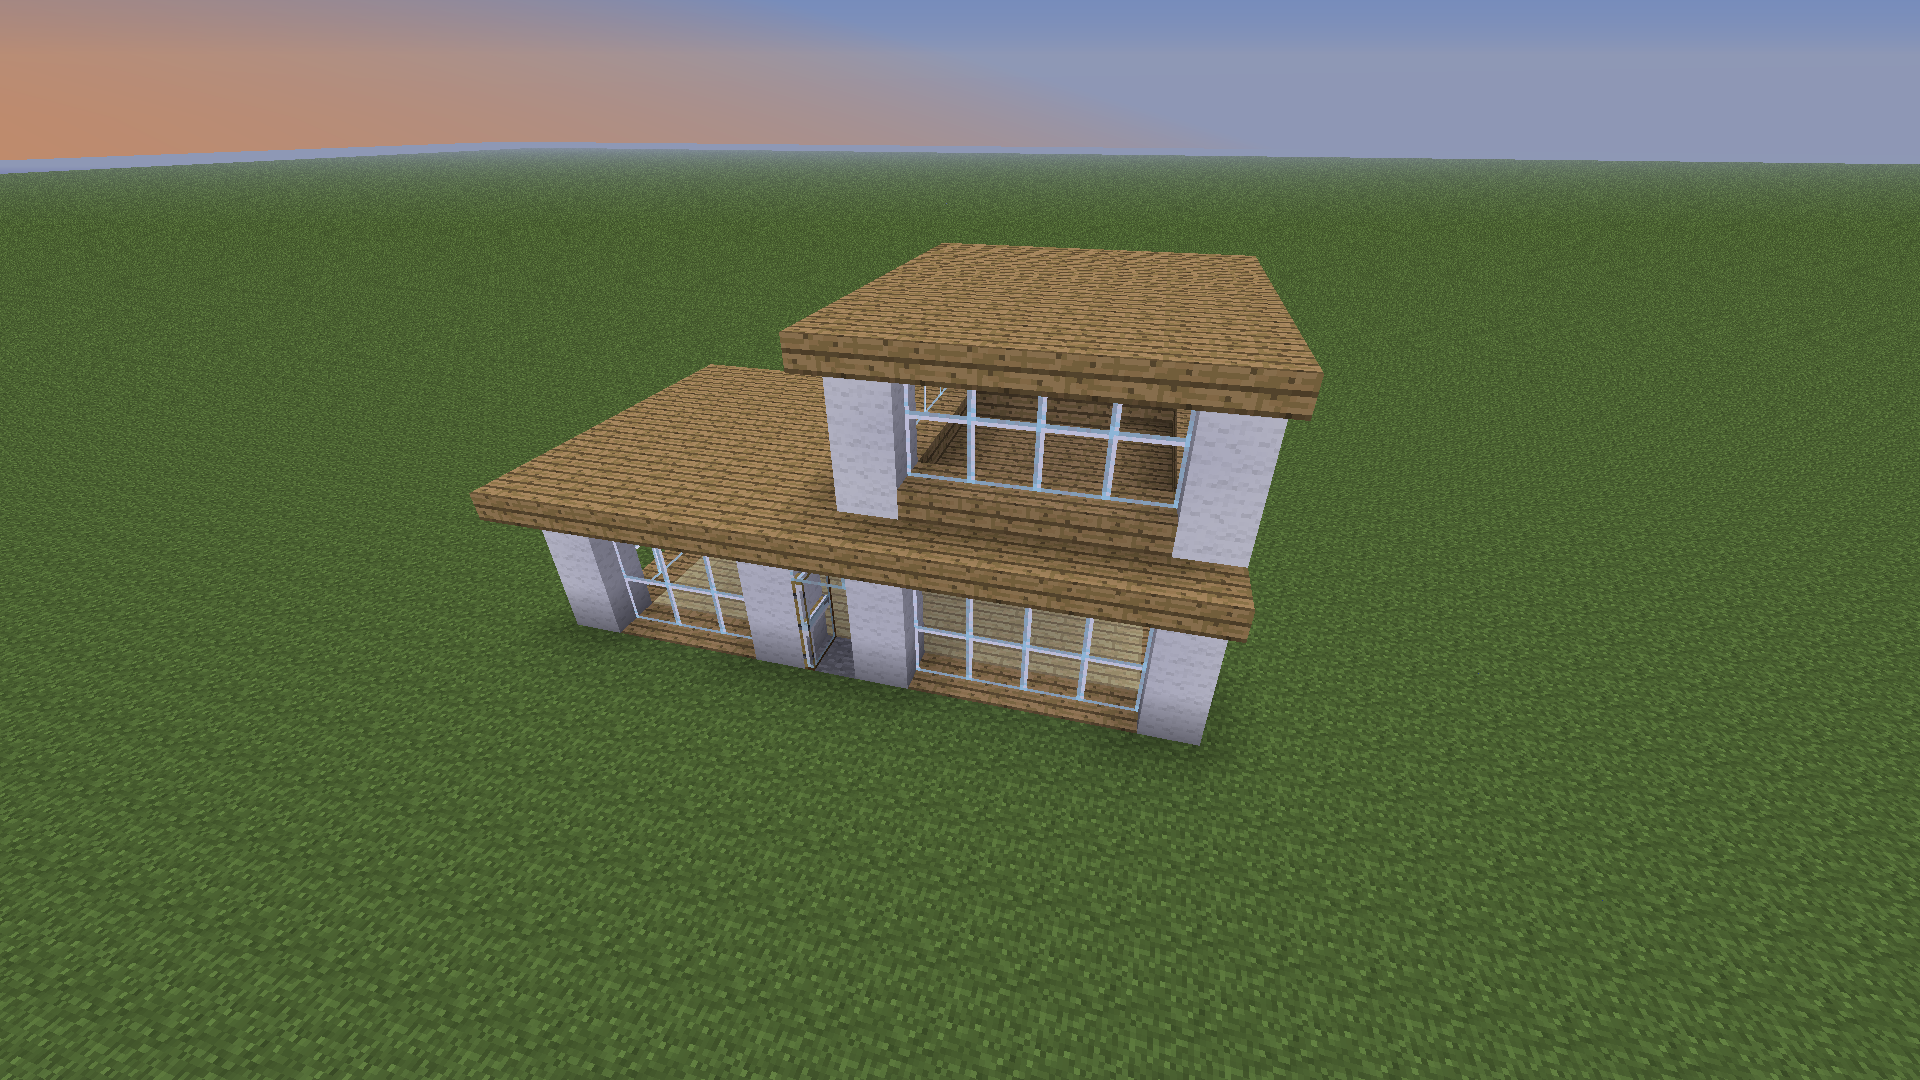 Easy minecraft houses on pinterest minecraft houses minecraft furniture an - Minecraft design house ...